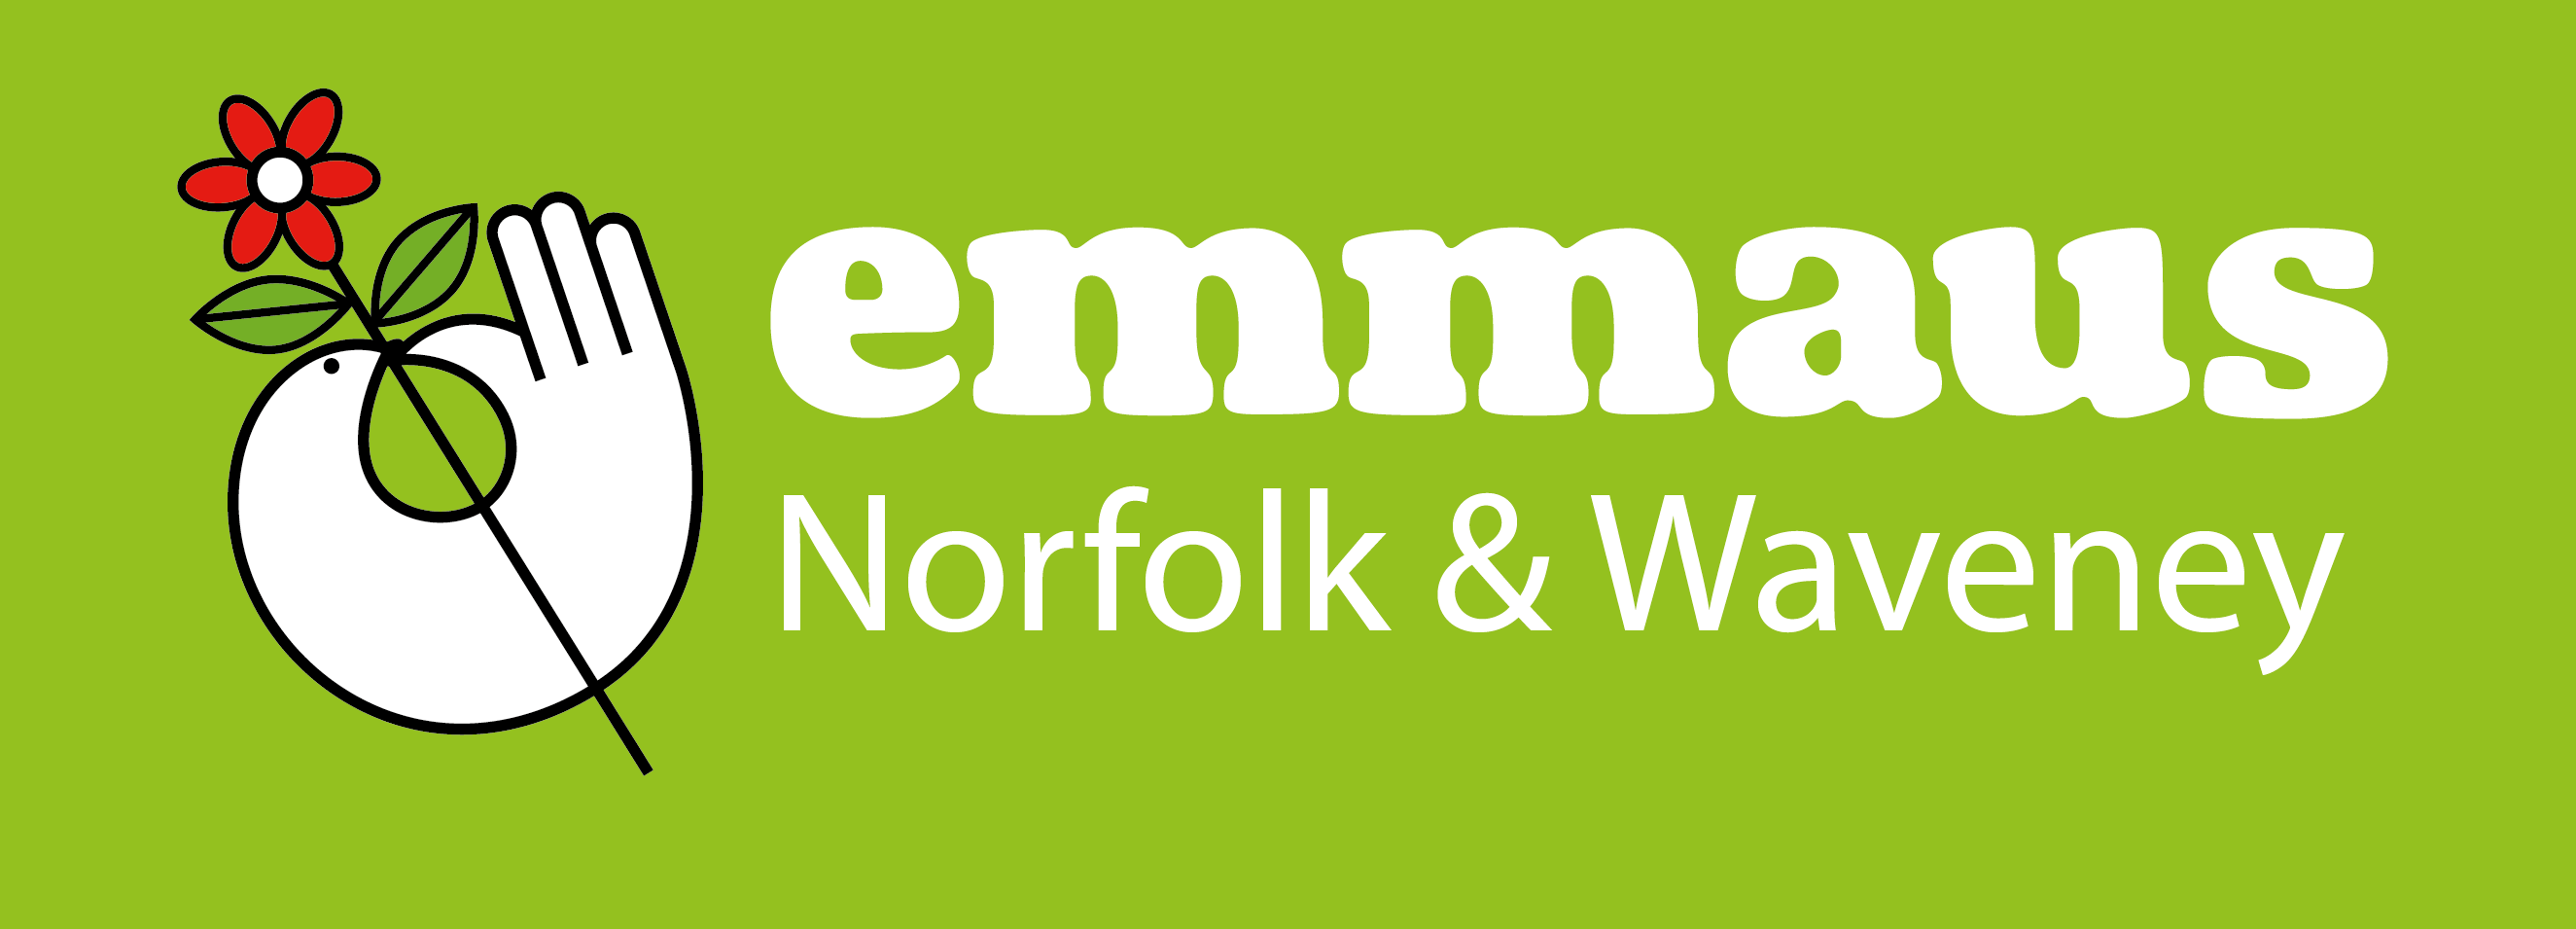 Norfolk Waveney logo